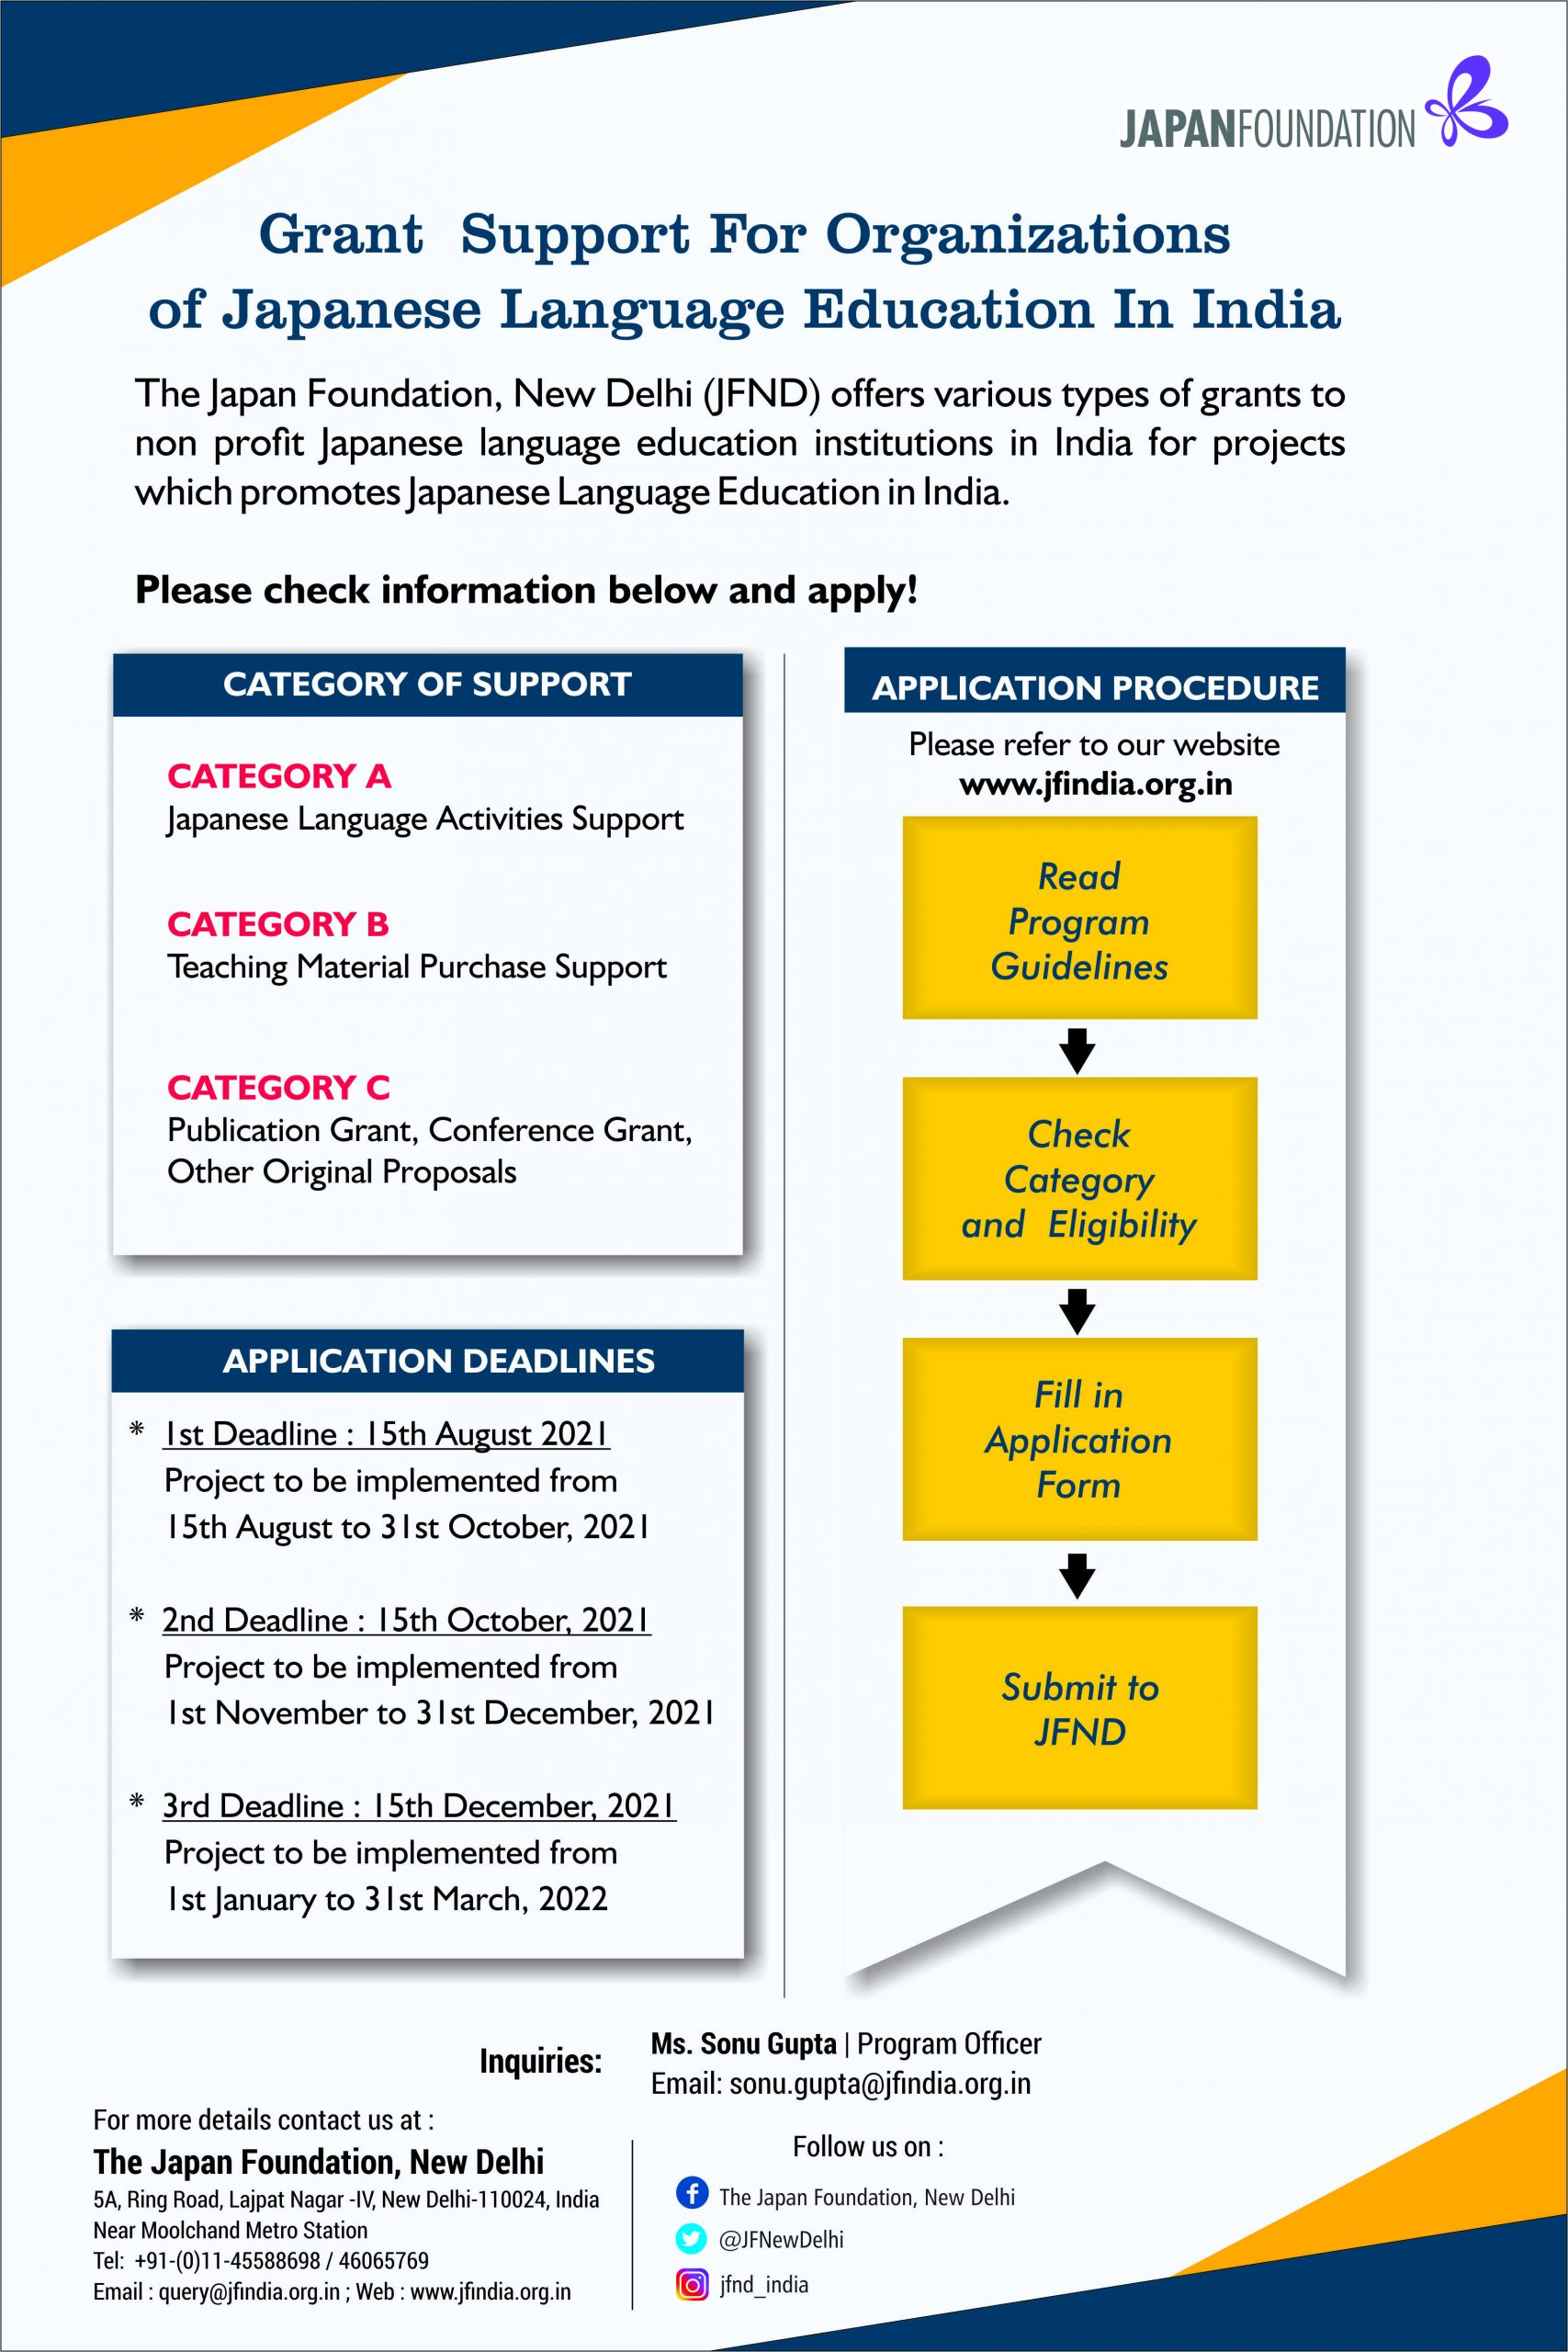 Call for Applications for Grant Support for Organizations of Japanese Language Education in India